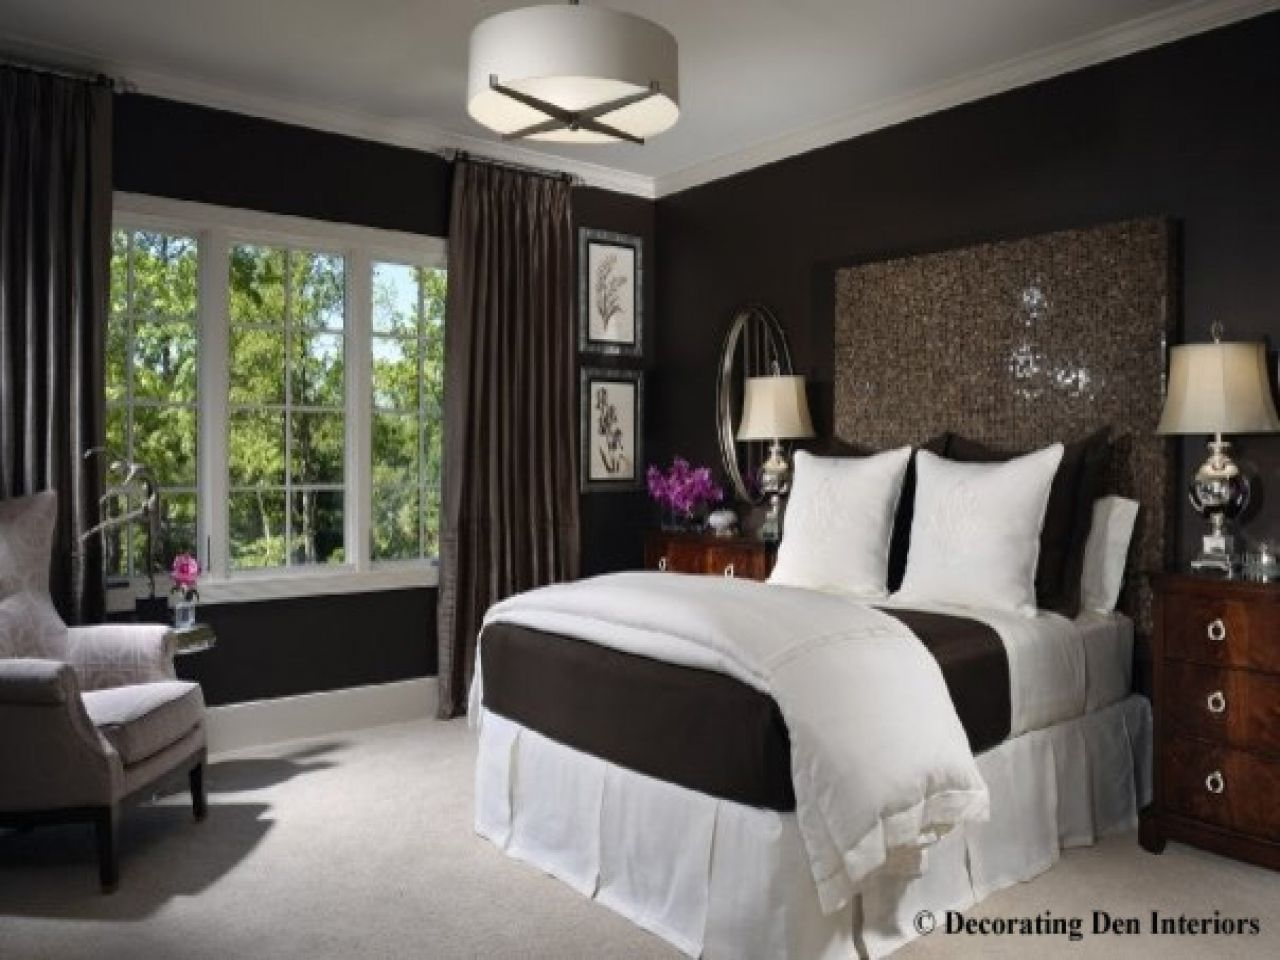 Bedrooms chocolate brown curtains walls black pictures bedroom ideas